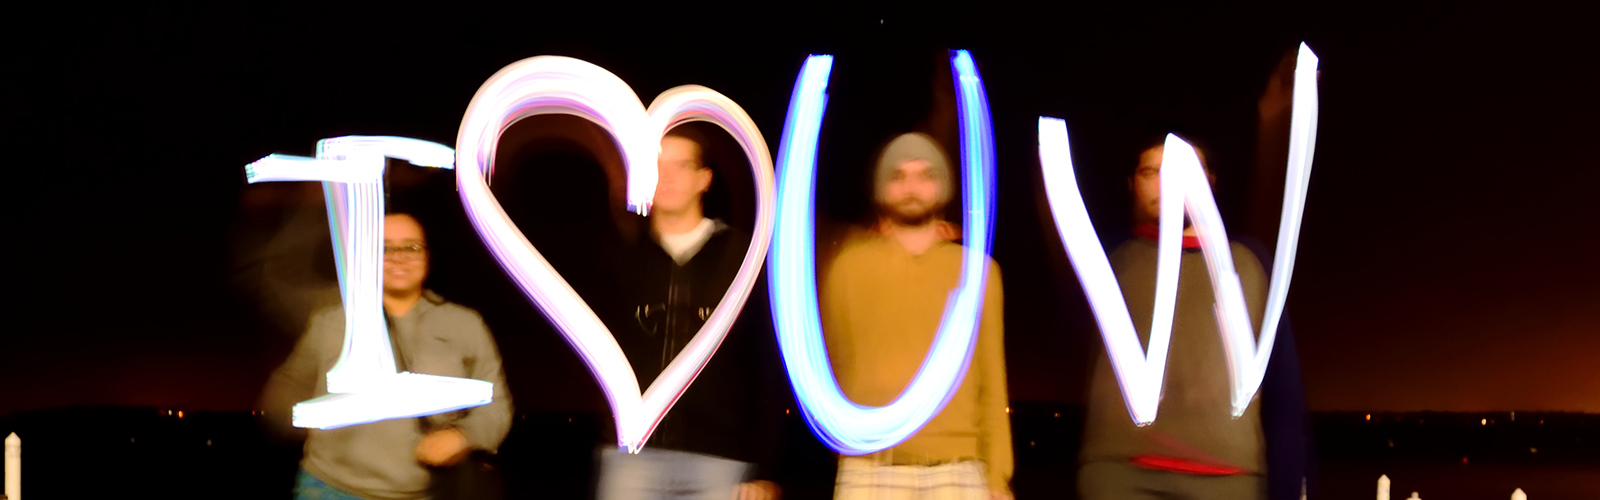 Four VISP alumni spell out 'I love UW' in glow lights in long exposure photo taken with dark lake as background.